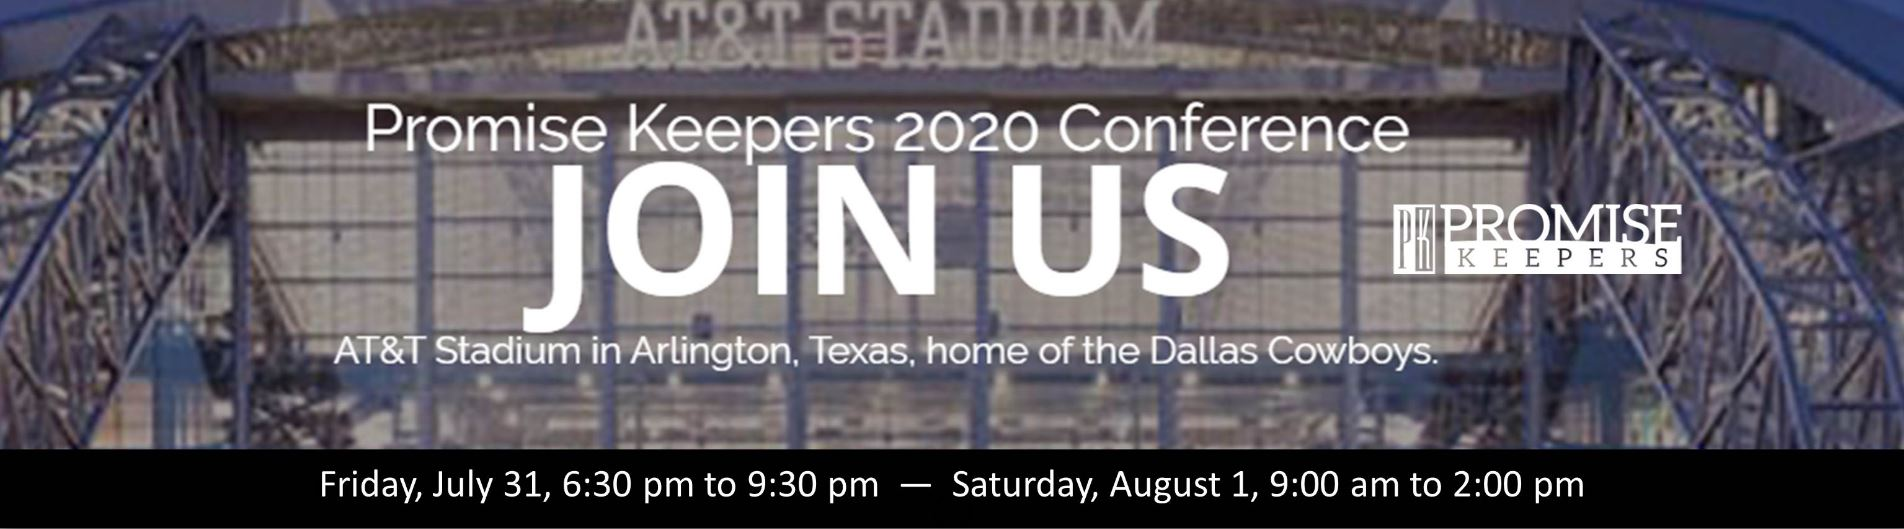 Promise Keepers Men's Conference  - CCF MEN